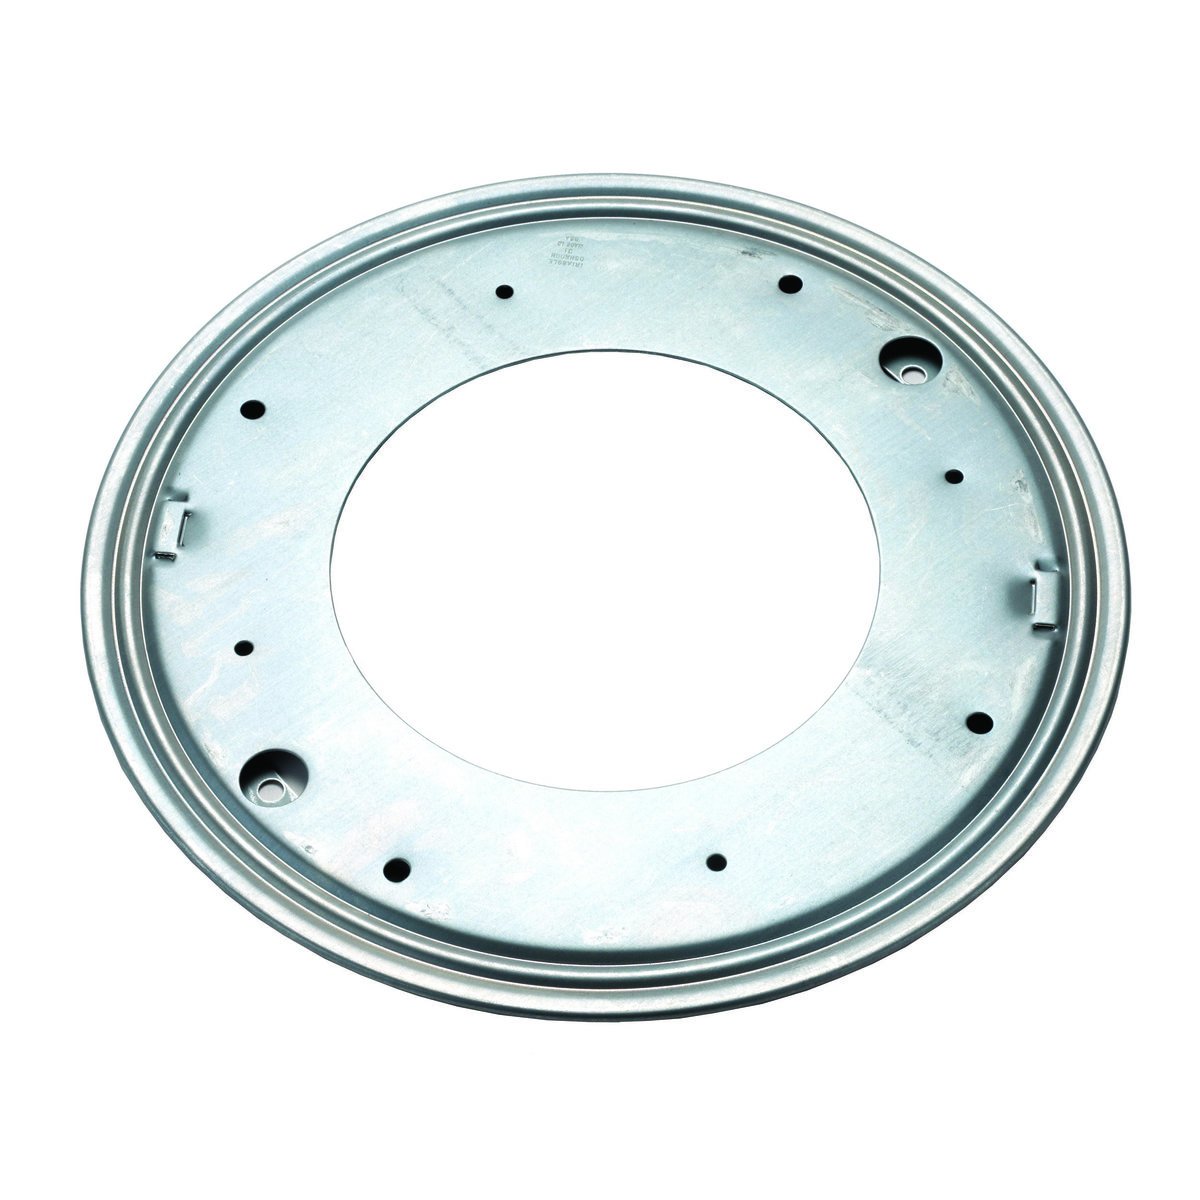 "Shepherd Hardware 9549 12/"" Lazy Susan 1000-Lb Load Capacity US SELLER New"